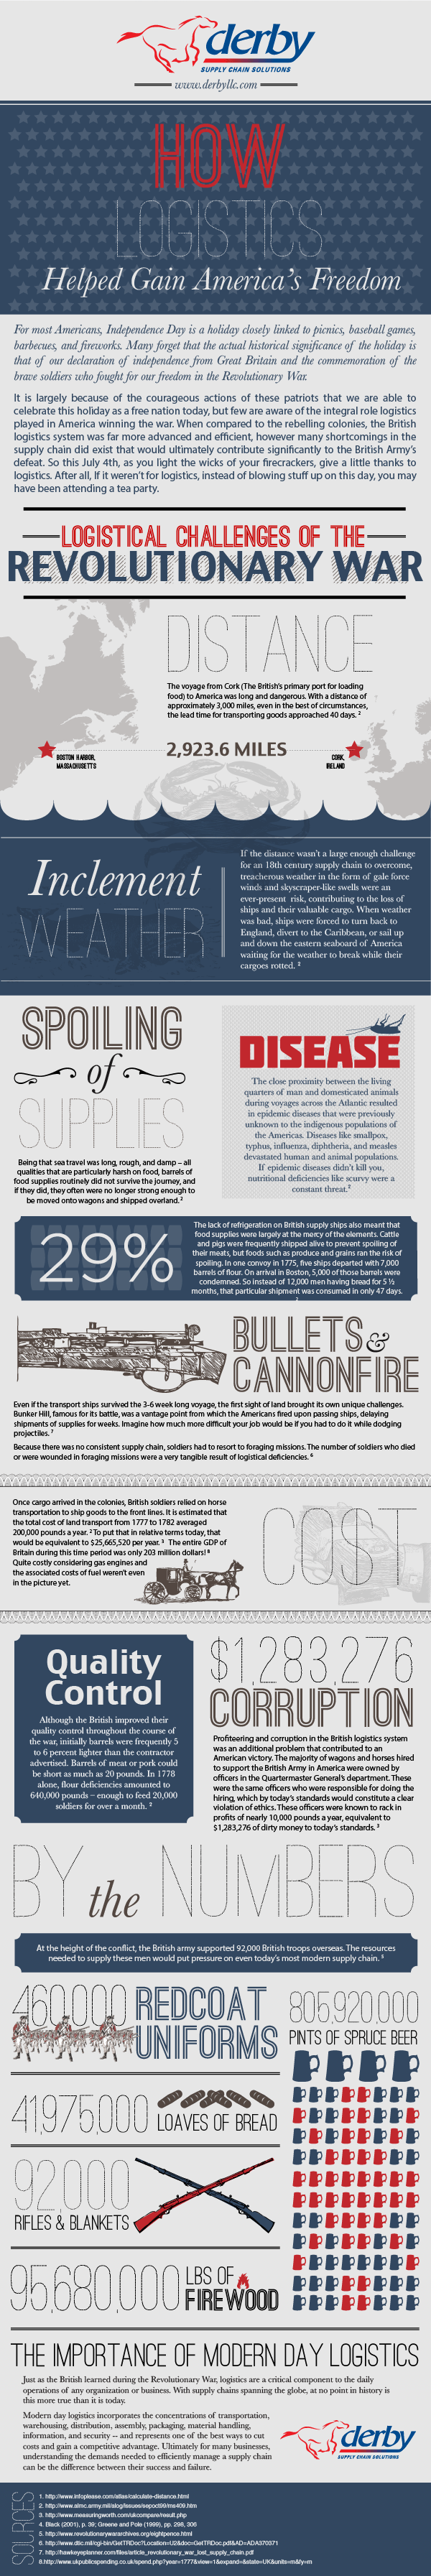 Infographic From Derby LLC On How Logistics Helped Gain America's Freedom